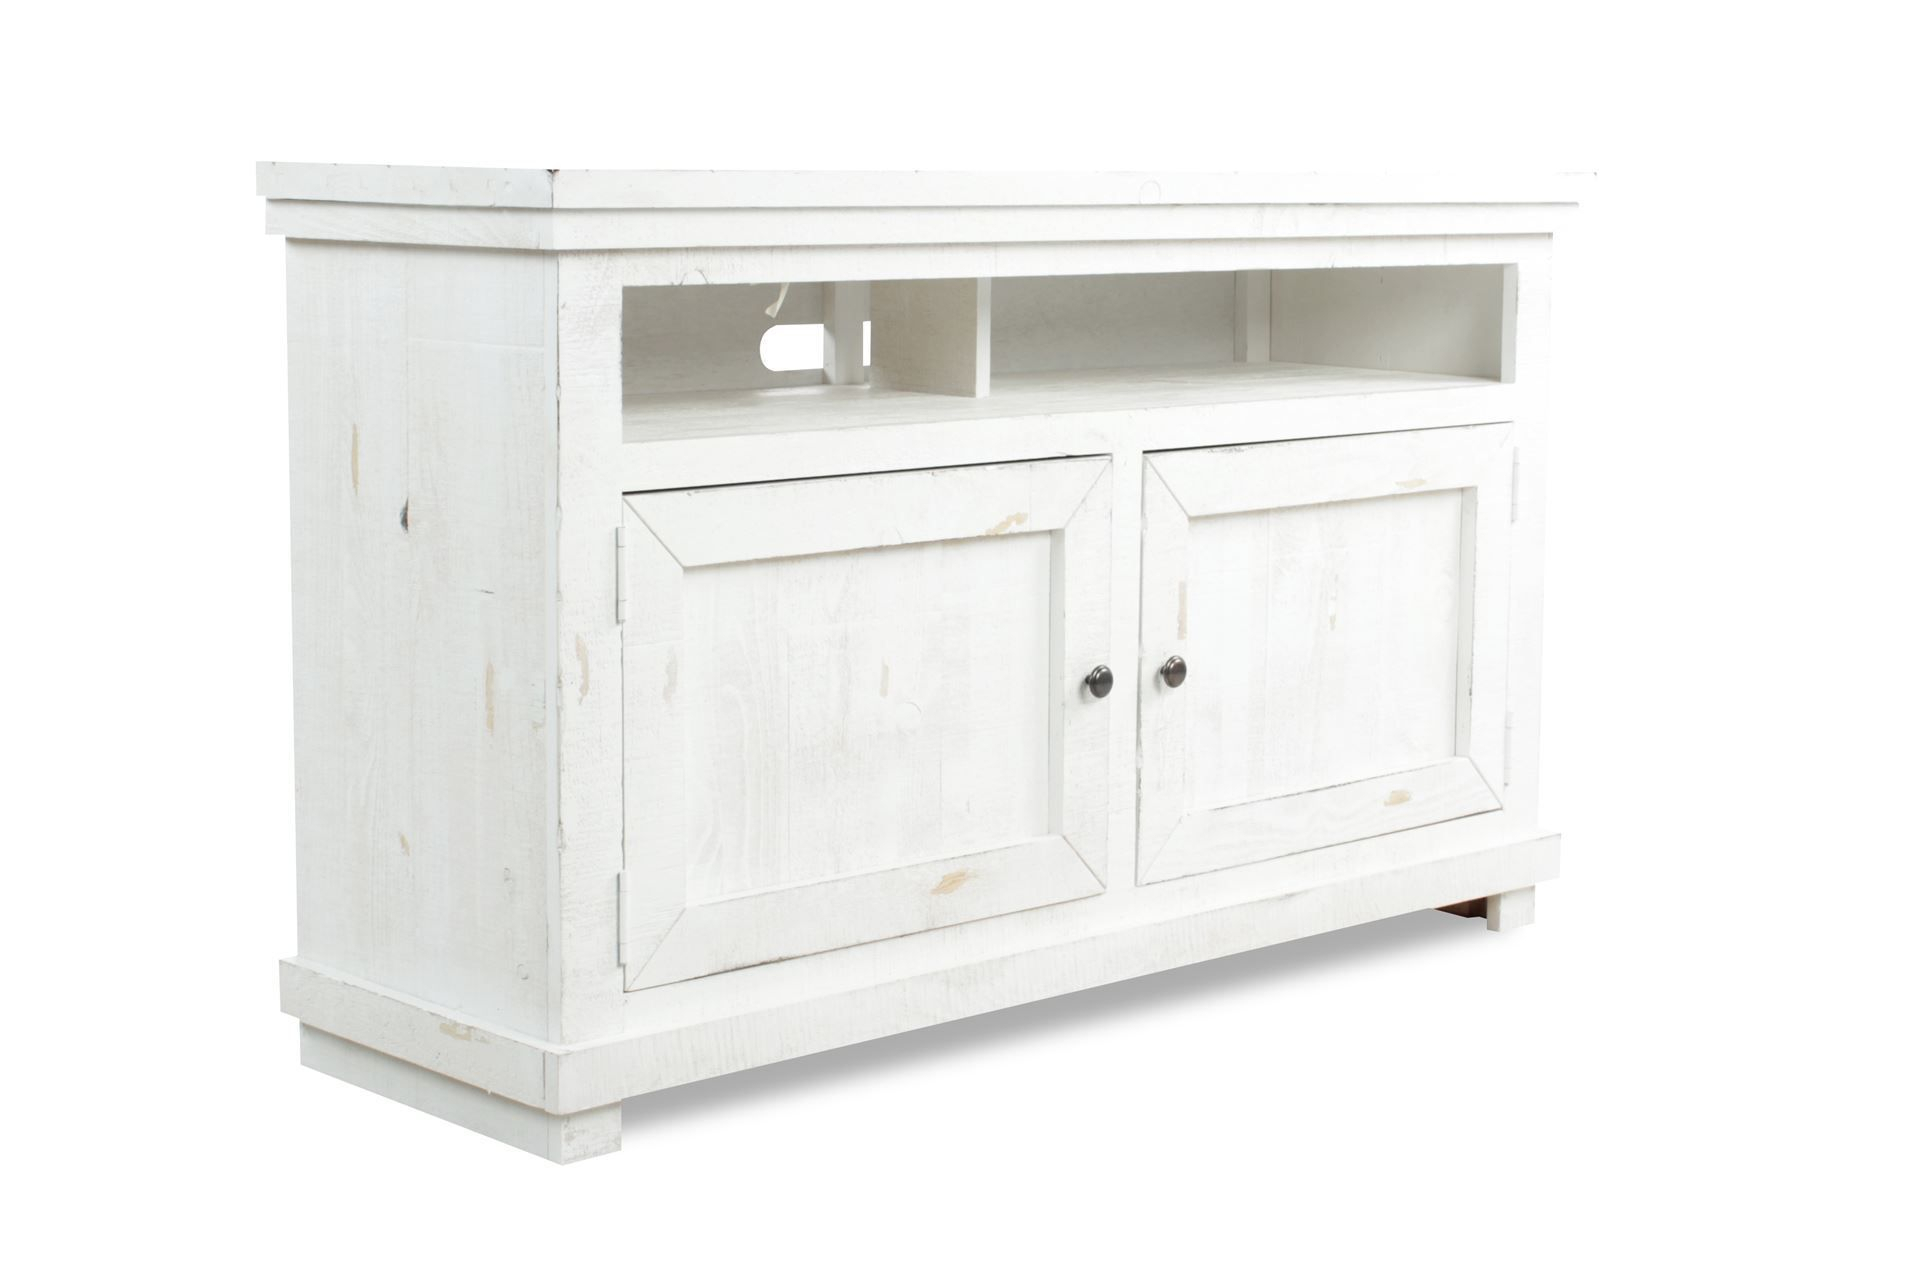 54 Inch Tv Stand, Sinclair White, Weathered White | Consoles, Tv Throughout Sinclair White 54 Inch Tv Stands (View 3 of 30)